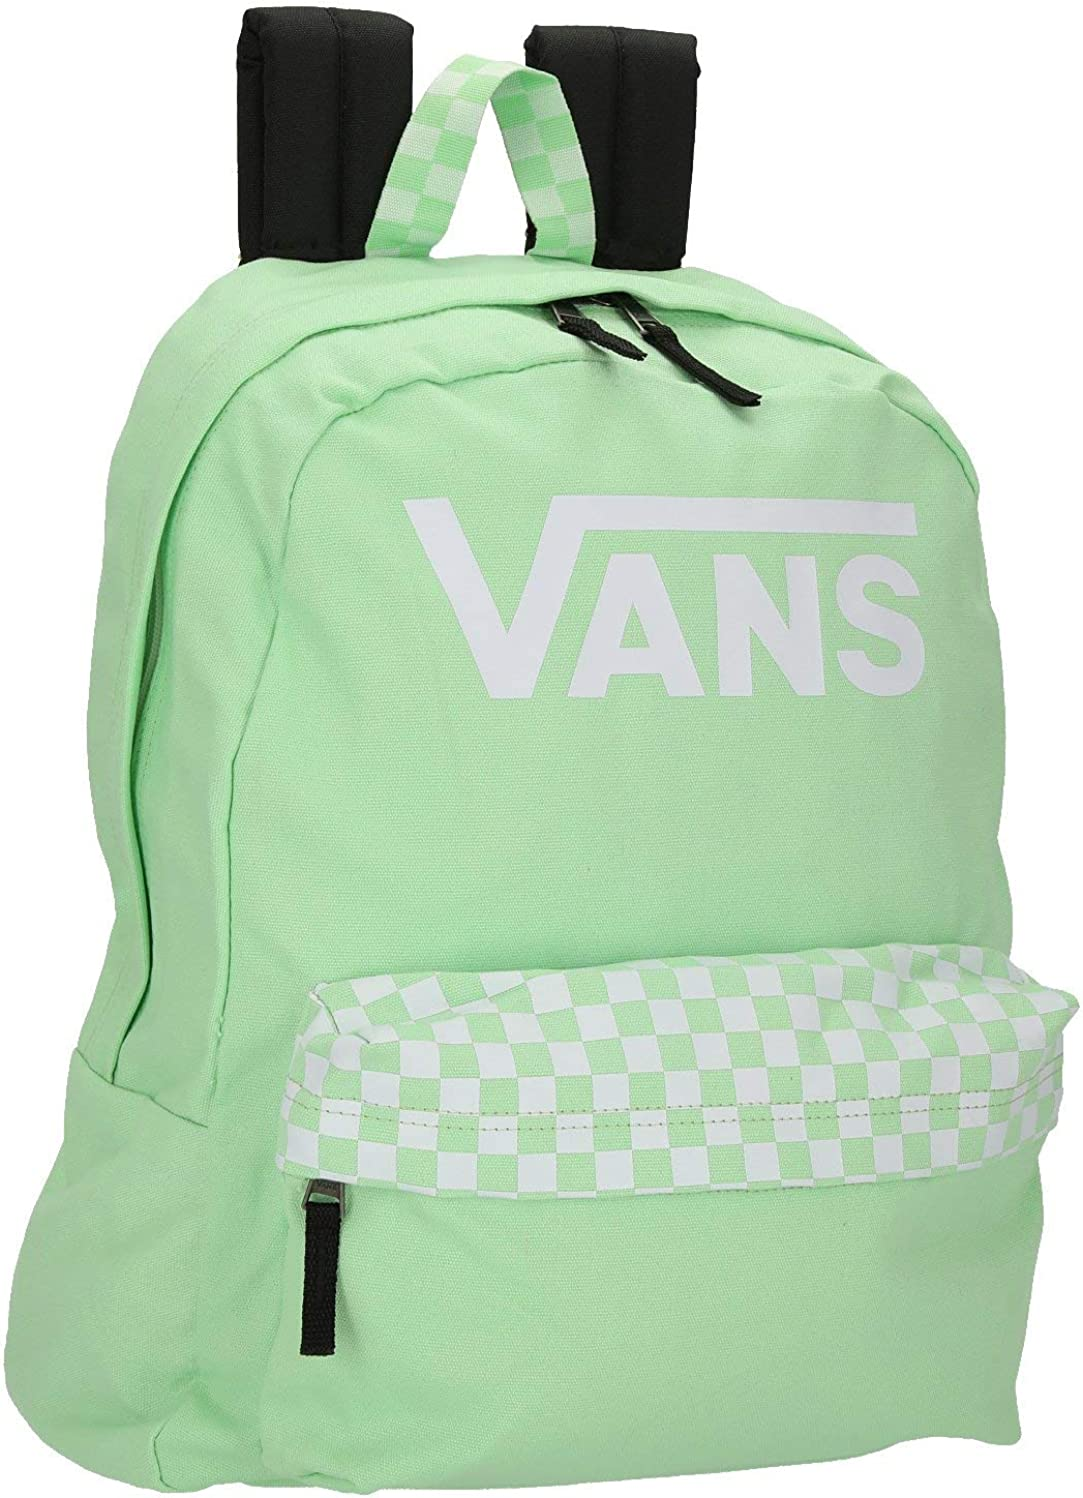 Vans Realm Rucksack Color Theory 43 cm Black: